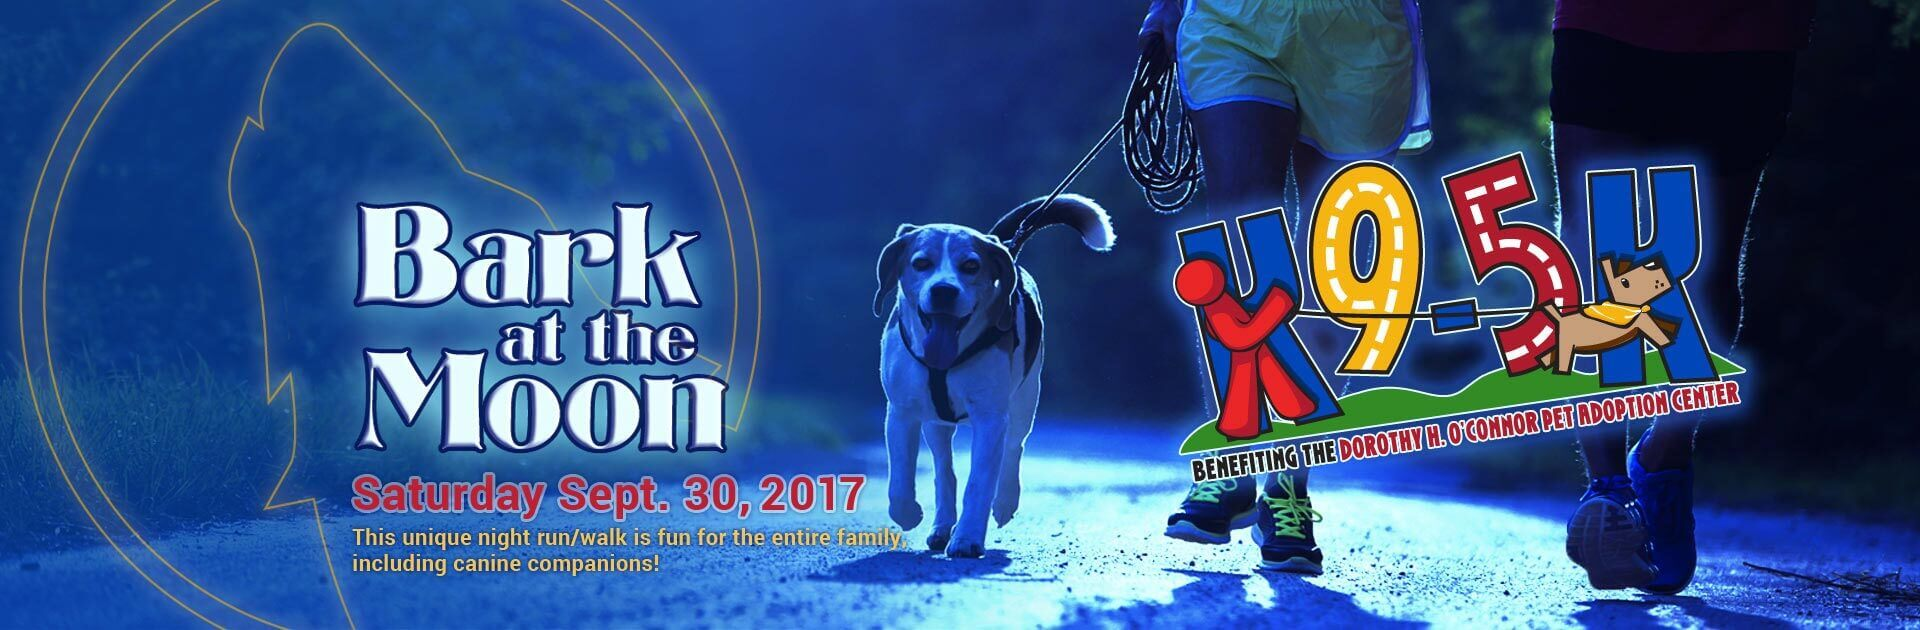 2017 Bark at the Moon K9-5K